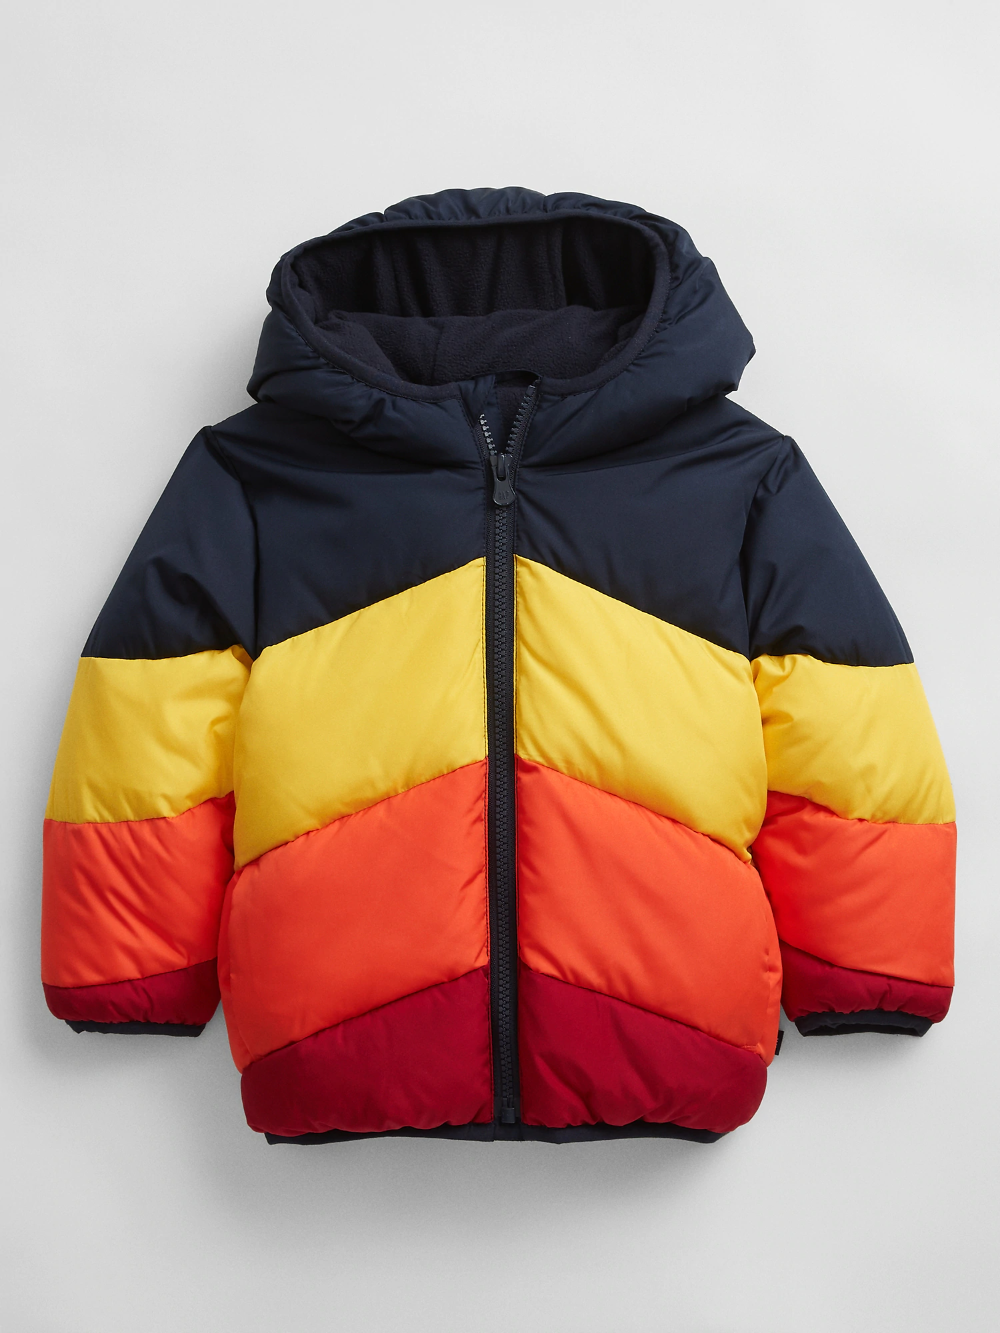 Toddler Coldcontrol Max Puffer Jacket Gap Factory In 2020 Puffer Jackets Puffer Gap [ 1333 x 1000 Pixel ]